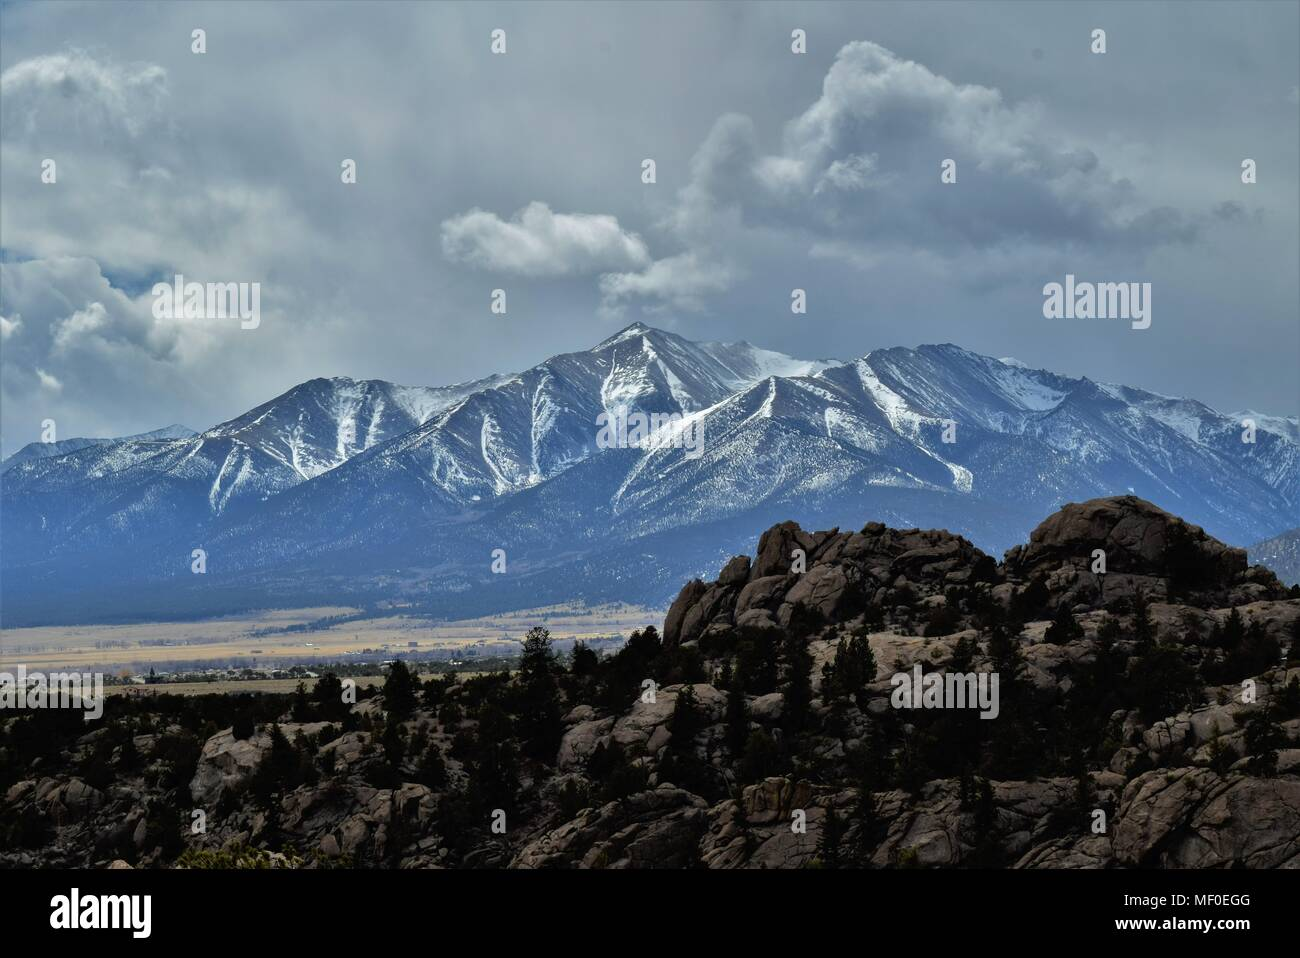 A partly cloudy sky with visible clear sky over snowcapped Mount Princeton (of The Collegiate Peaks mountain range) in beautiful Buena Vista, Colorado - Stock Image